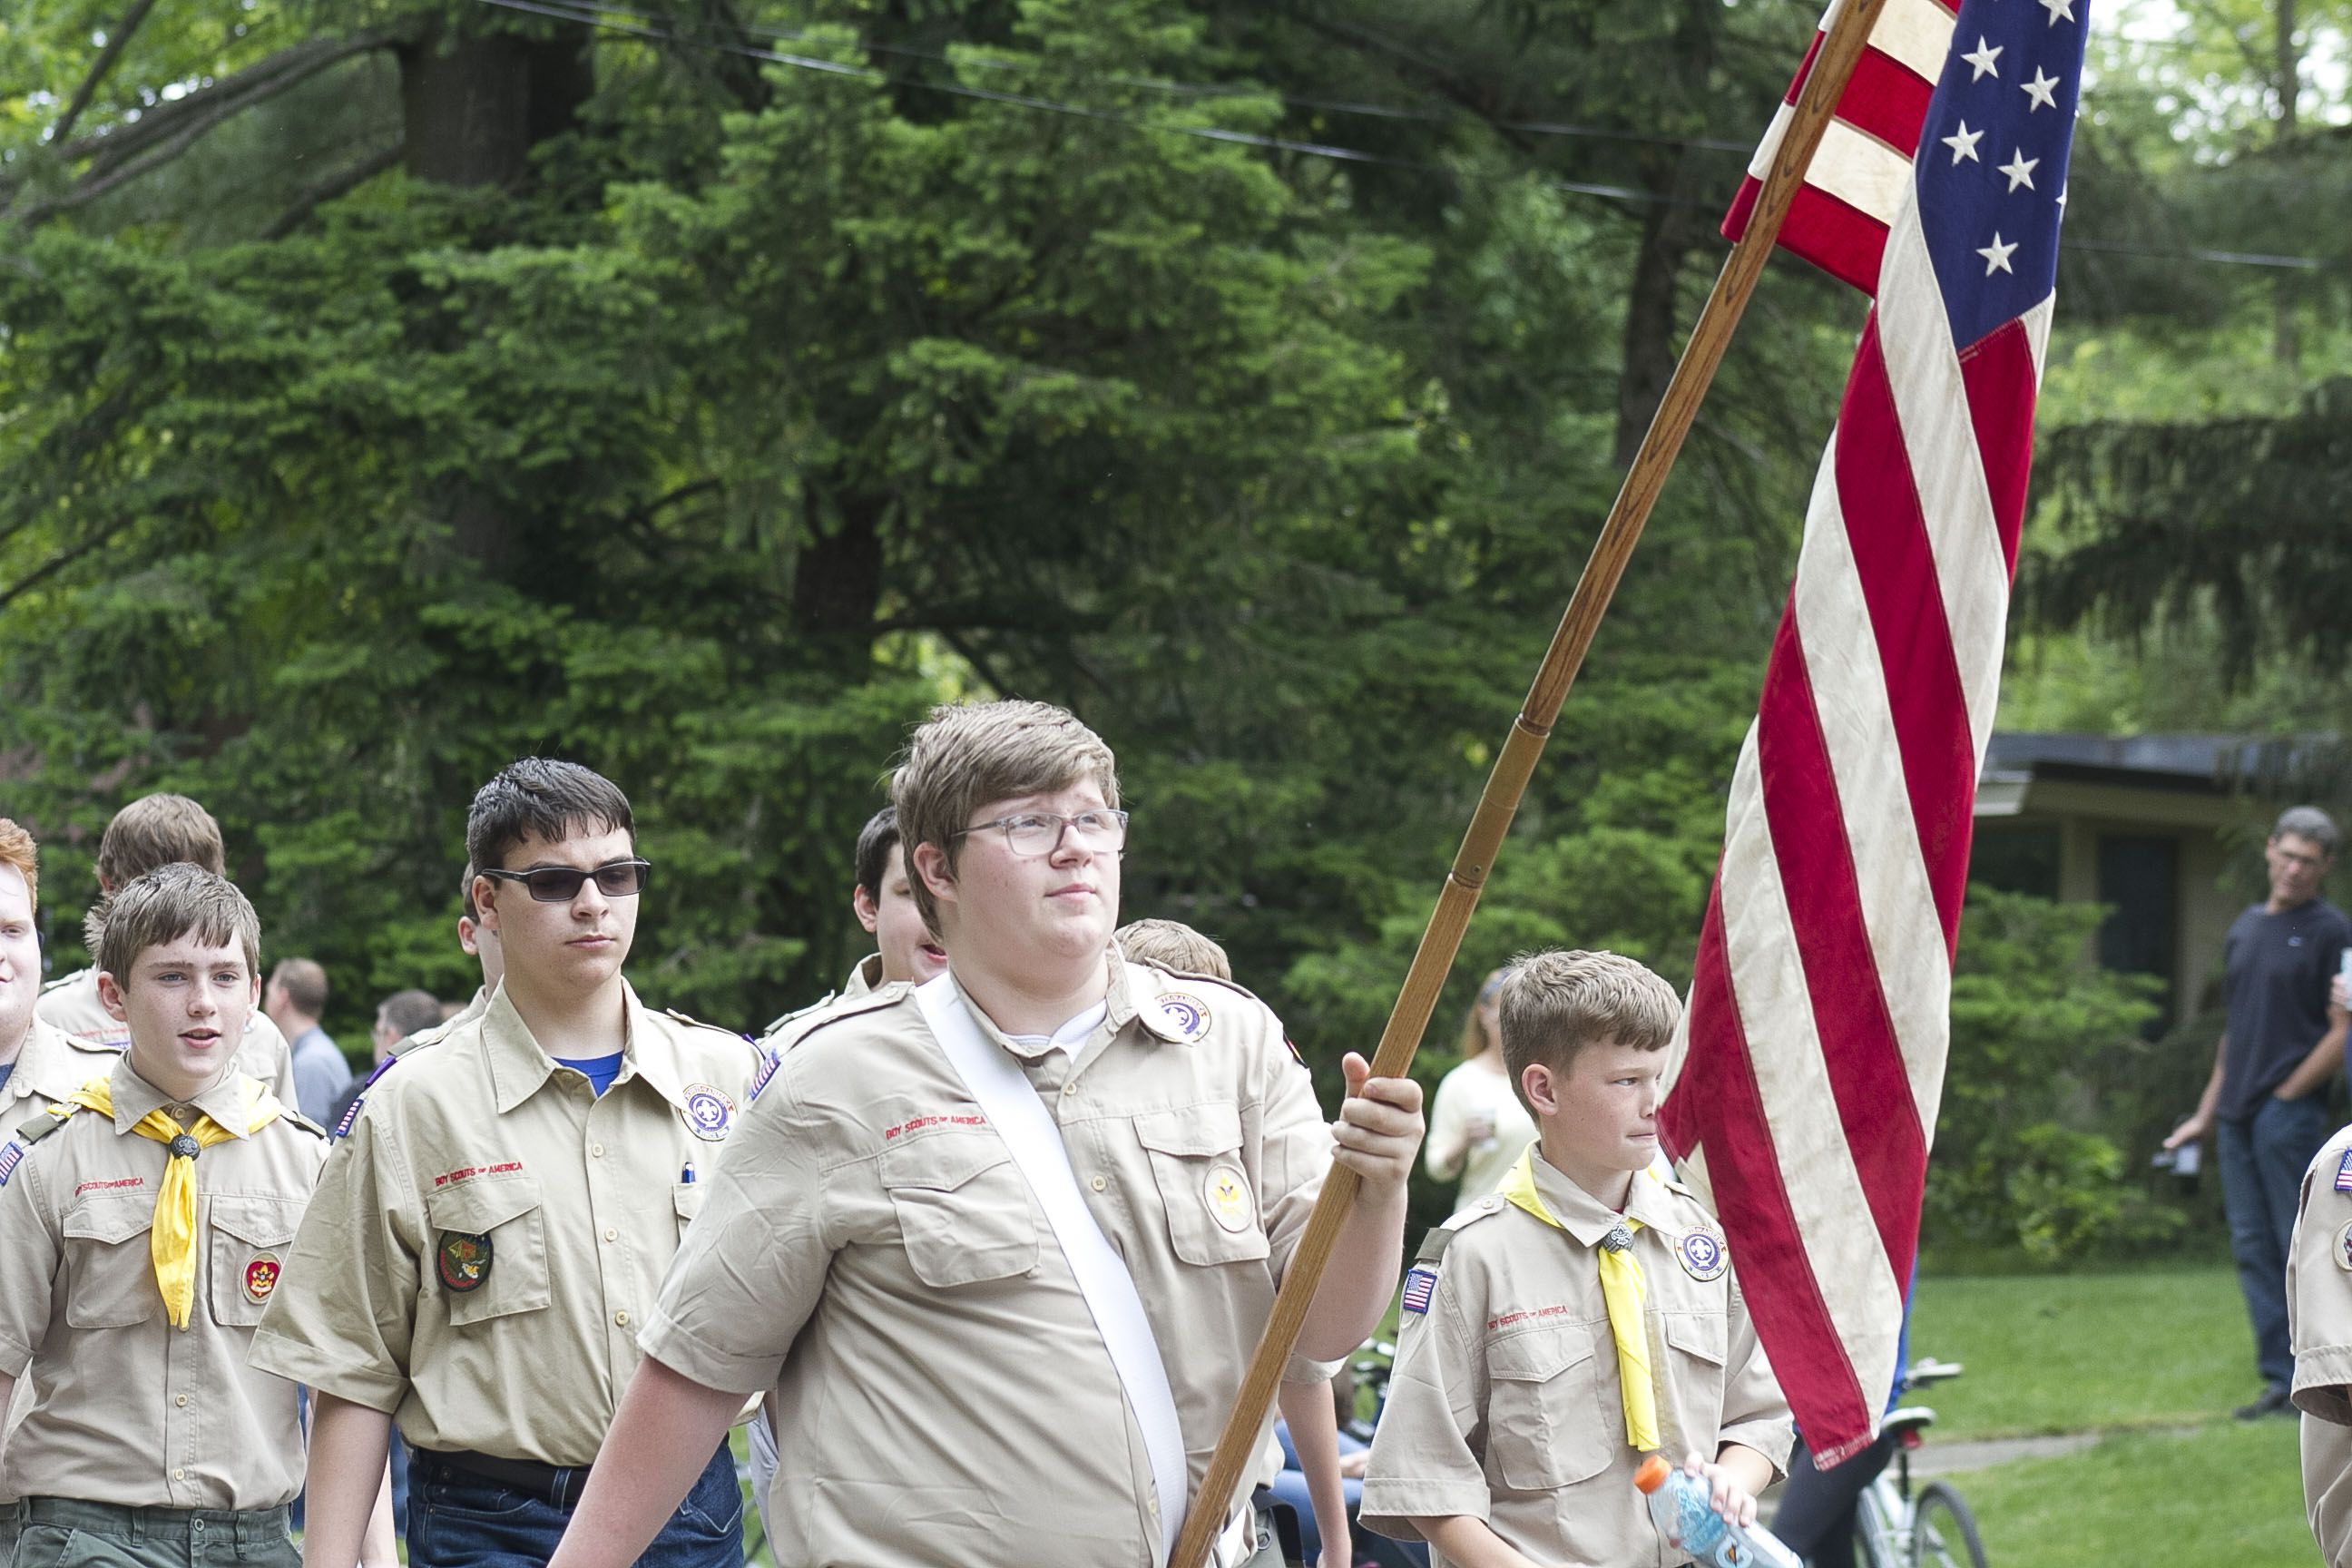 Local Girl Scout and Boy Scout troops participated in Oswego's annual Memorial Day parade, ending in a ceremony at Oswego Township Ceremony led by the Oswego American Legion Post 675.